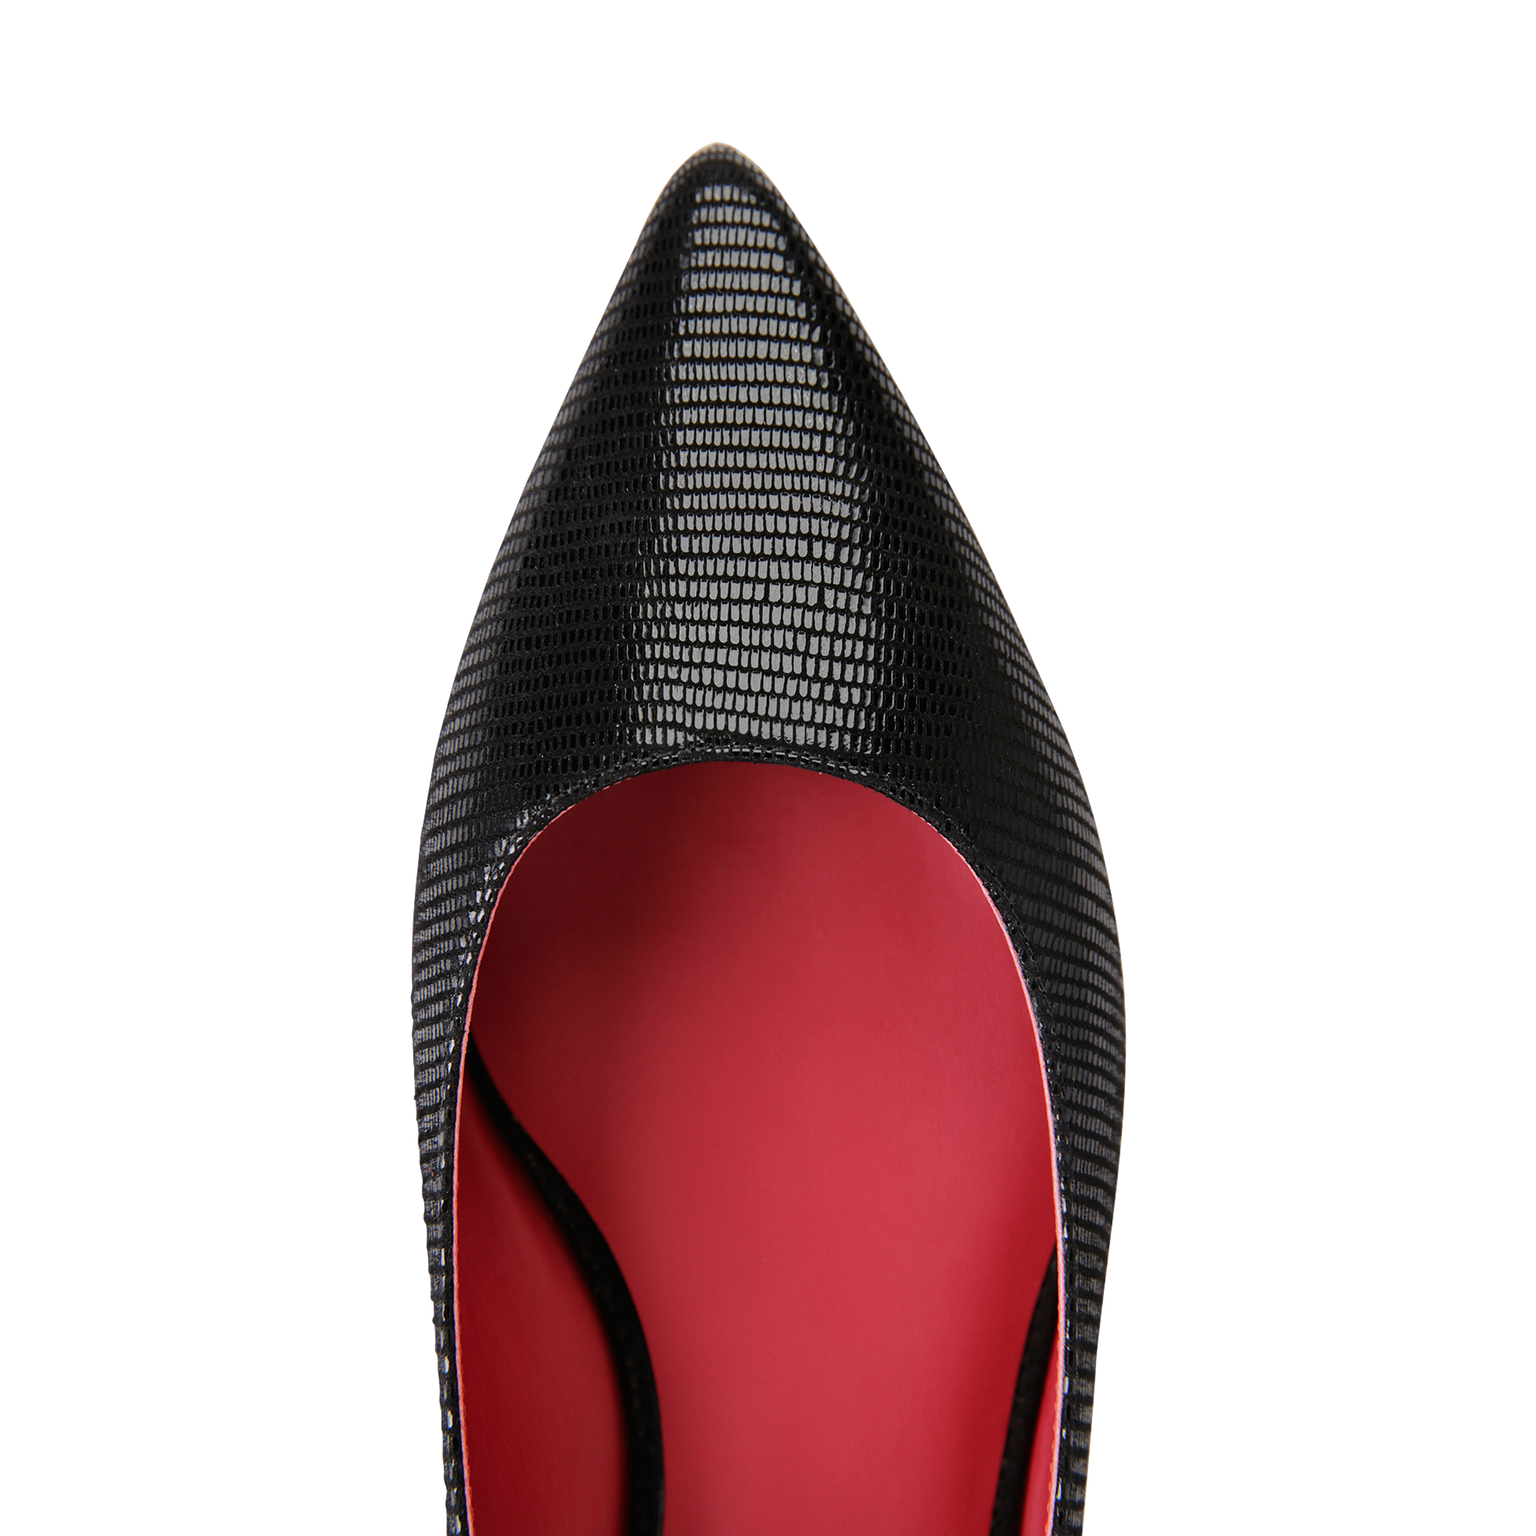 COMO - Varanus Nero + Red Inside, VIAJIYU - Women's Hand Made Sustainable Luxury Shoes. Made in Italy. Made to Order.